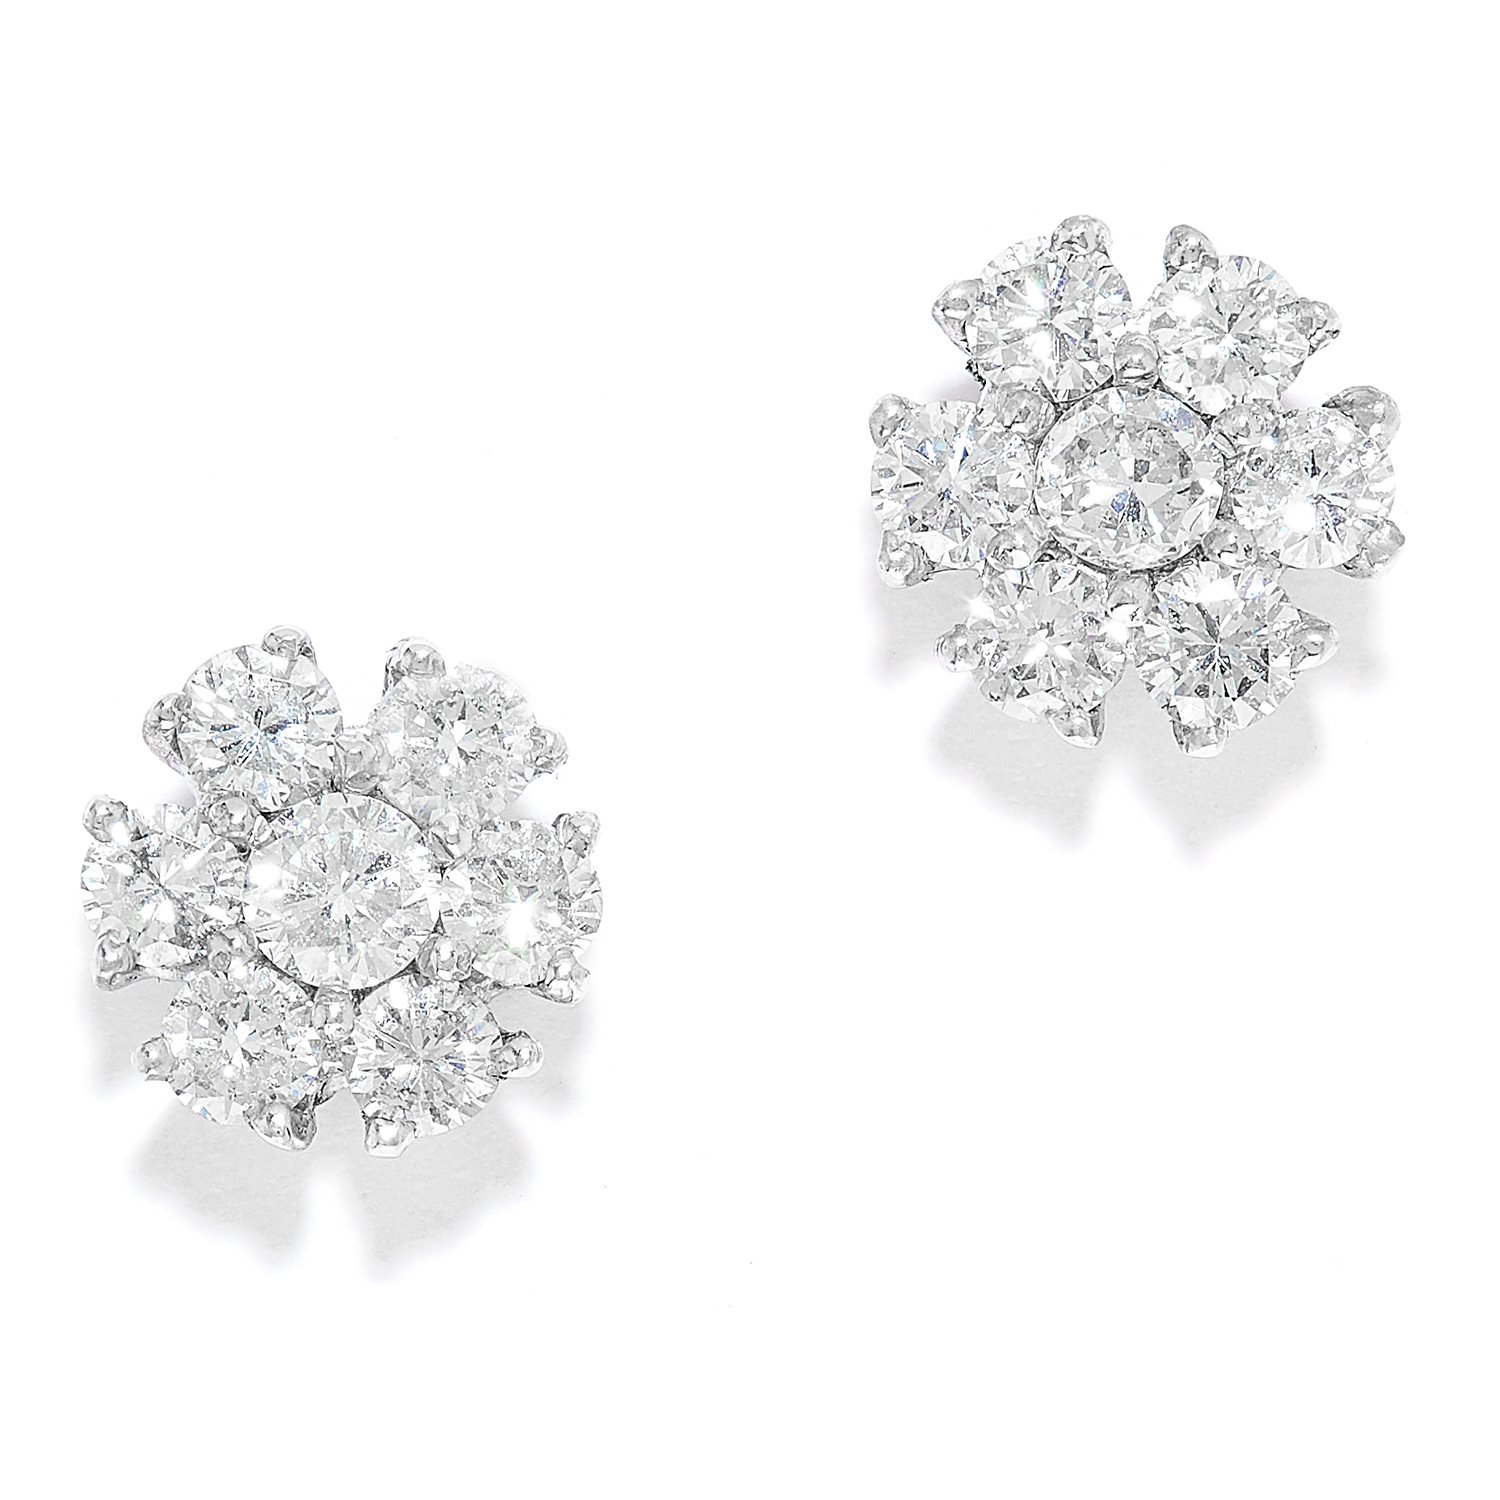 1.00 CARAT DIAMOND STUD EARRINGS in 18ct white gold, each set with round cut diamonds totalling